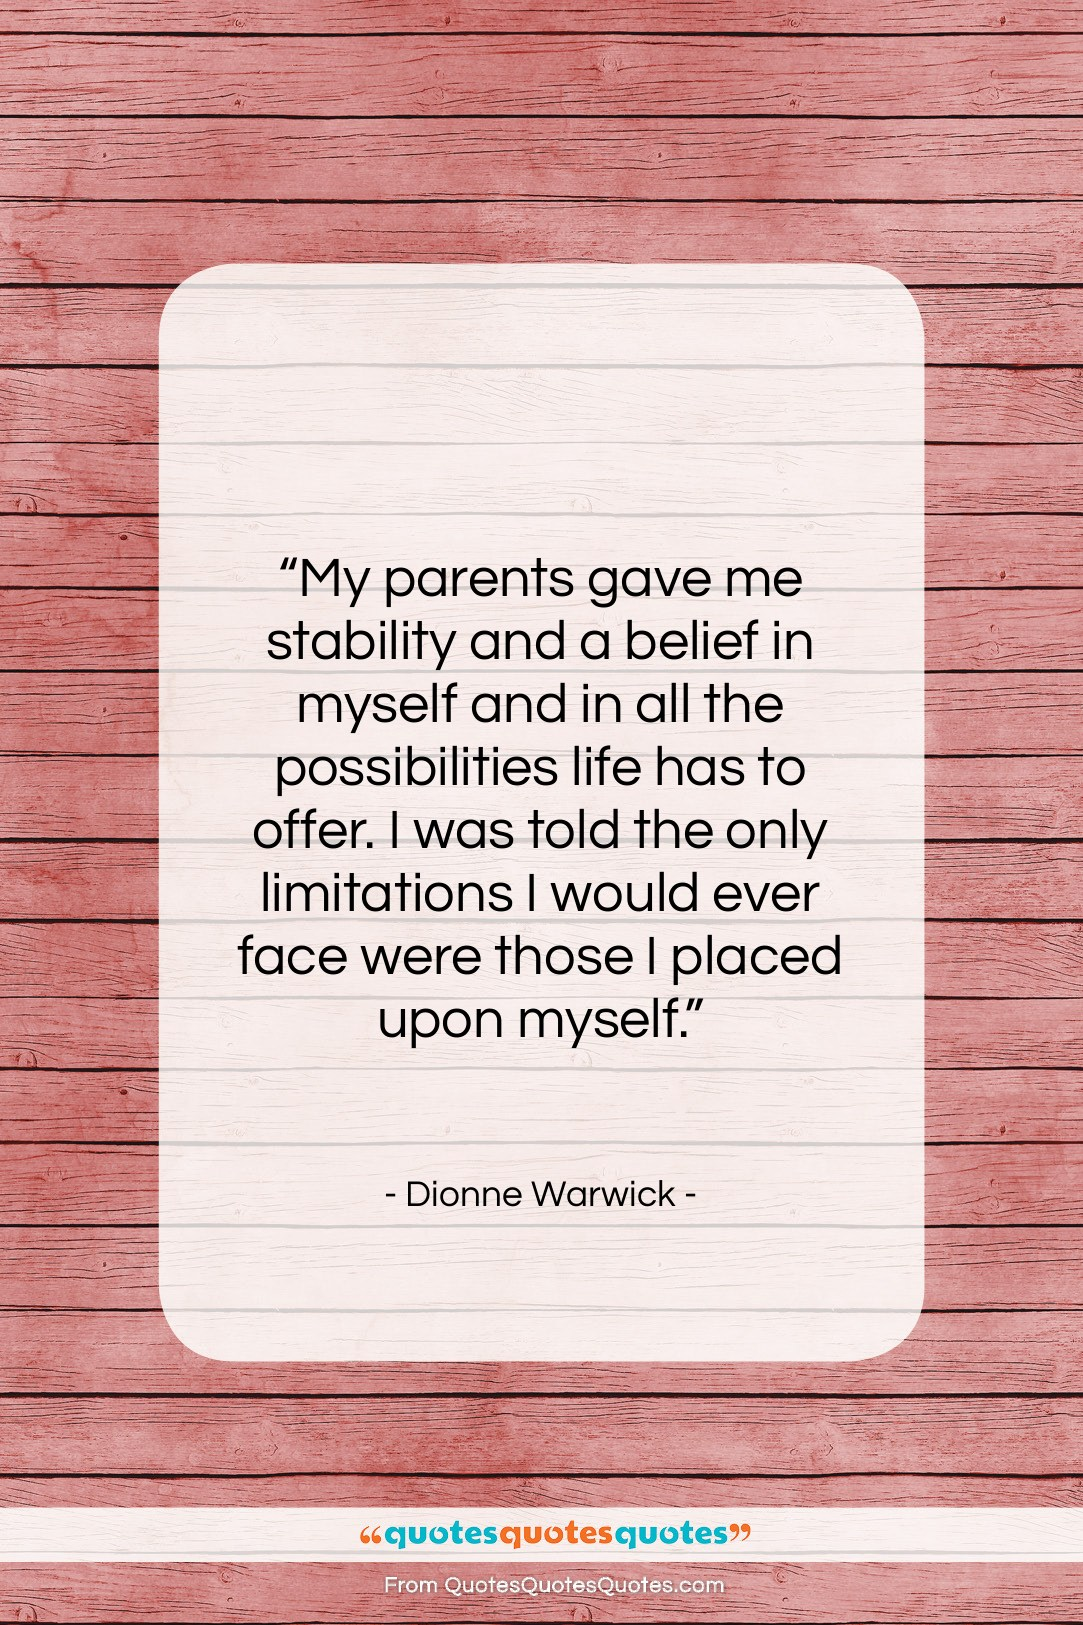 """Dionne Warwick quote: """"My parents gave me stability and a…""""- at QuotesQuotesQuotes.com"""